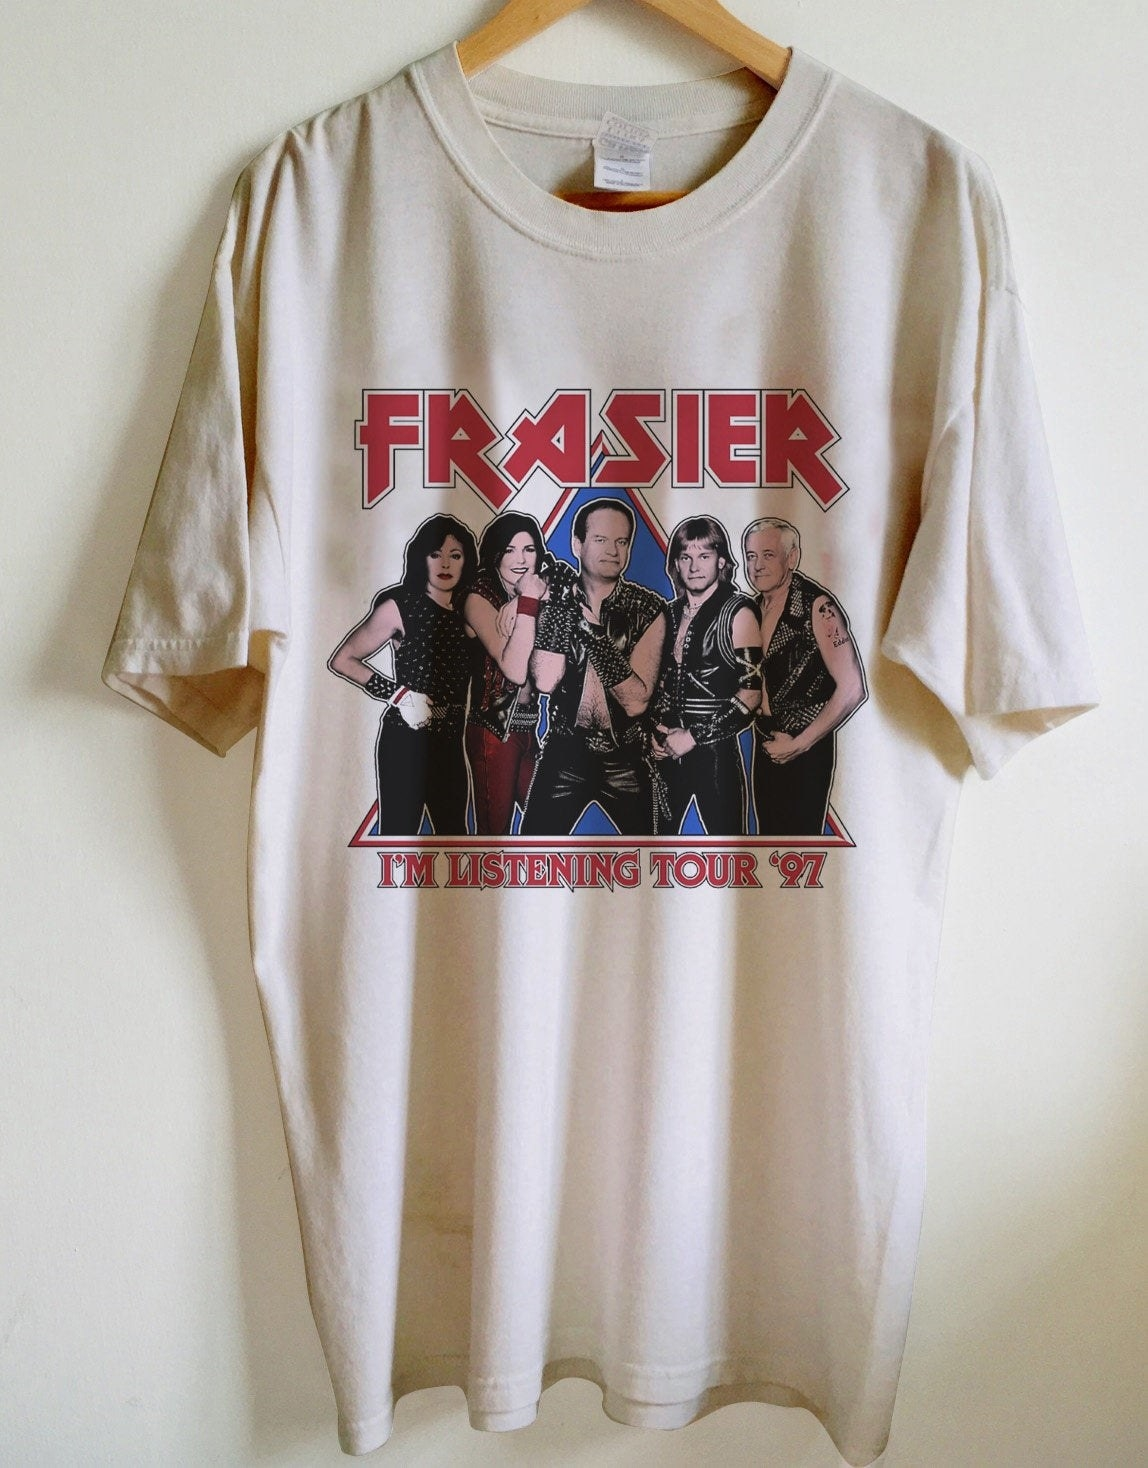 an oversized white tee with the cat of fraiser on it in rocker apparel